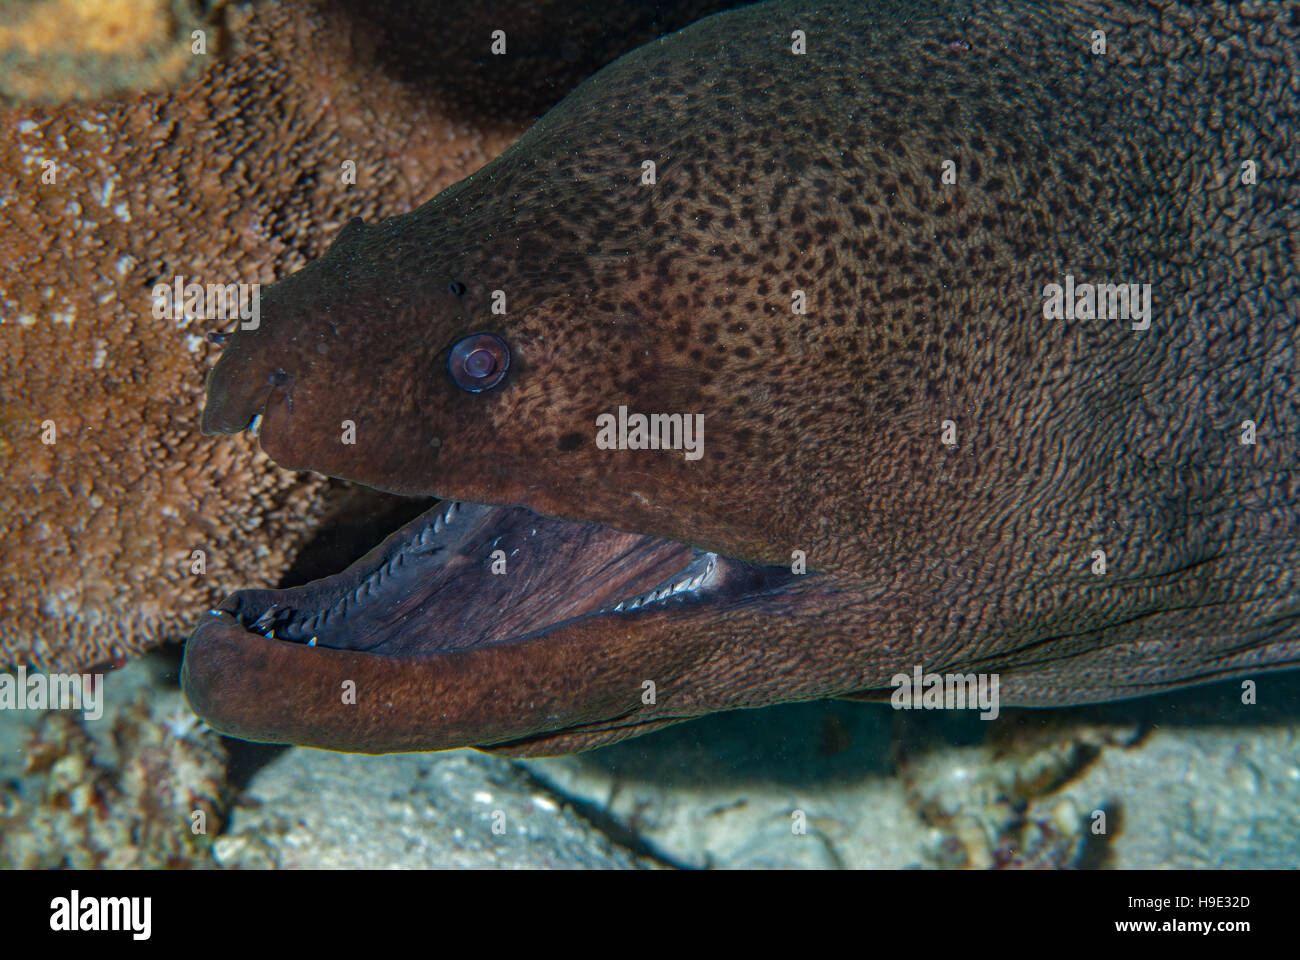 Giant moray, Gymnothorax javanicus, Muraenidae, Sharm el Sheikh, Red Sea, Egypt - Stock Image